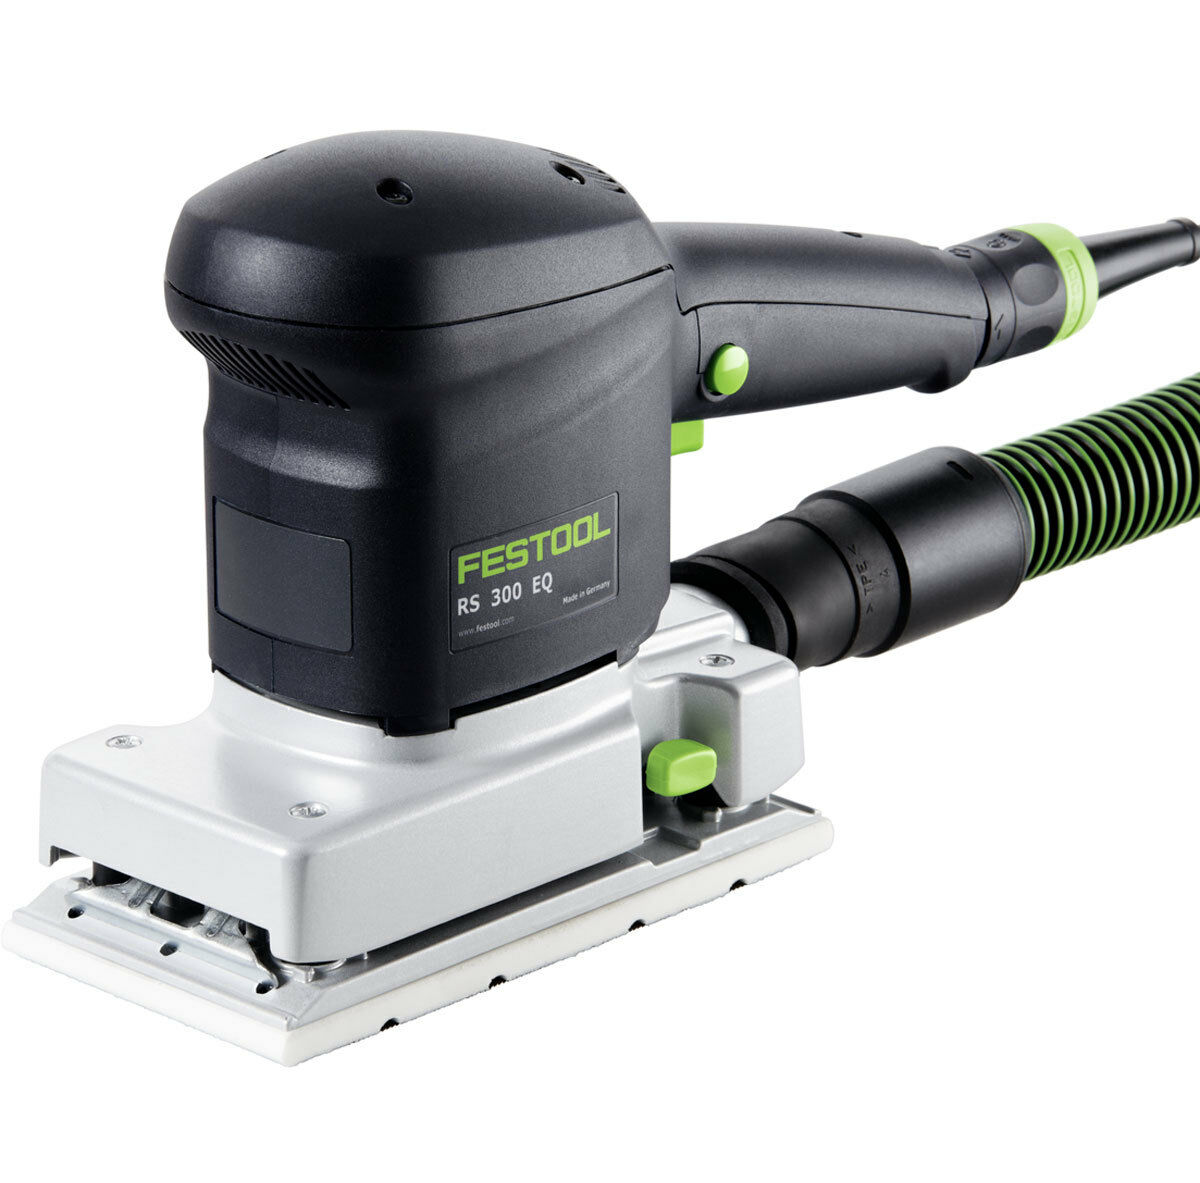 FESTOOL RUTSCHER RS 300 EQ-Plus inkl. Systainer - 567845